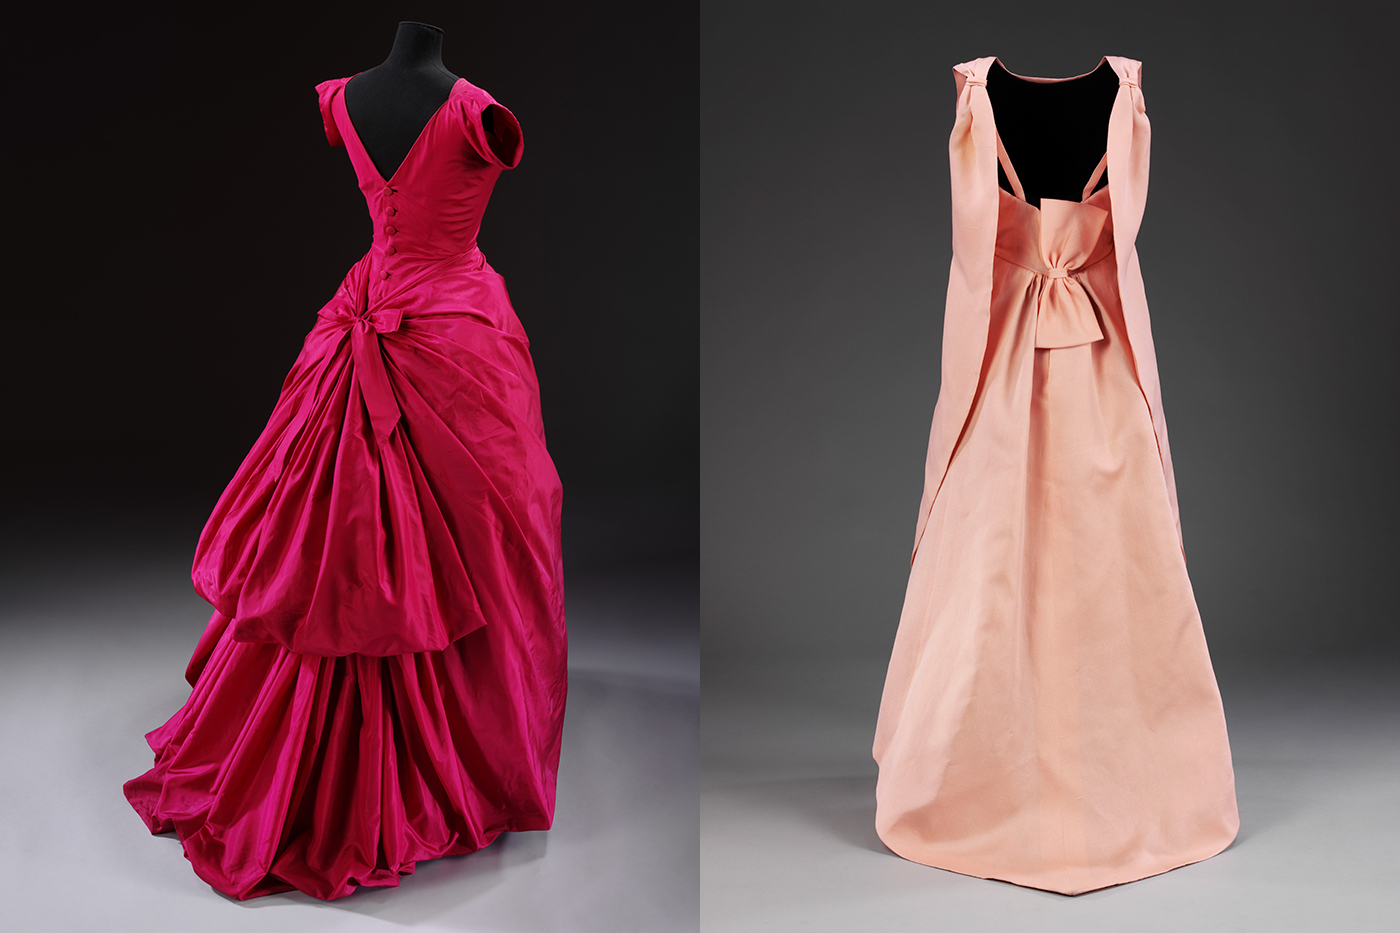 Evening dress, silk taffeta, Cristóbal Balenciaga, Paris, 1955 / 'La Tulipe' evening dress, gazar, Balenciaga for EISA, Spain, 1965 both © Victoria and Albert Museum, London